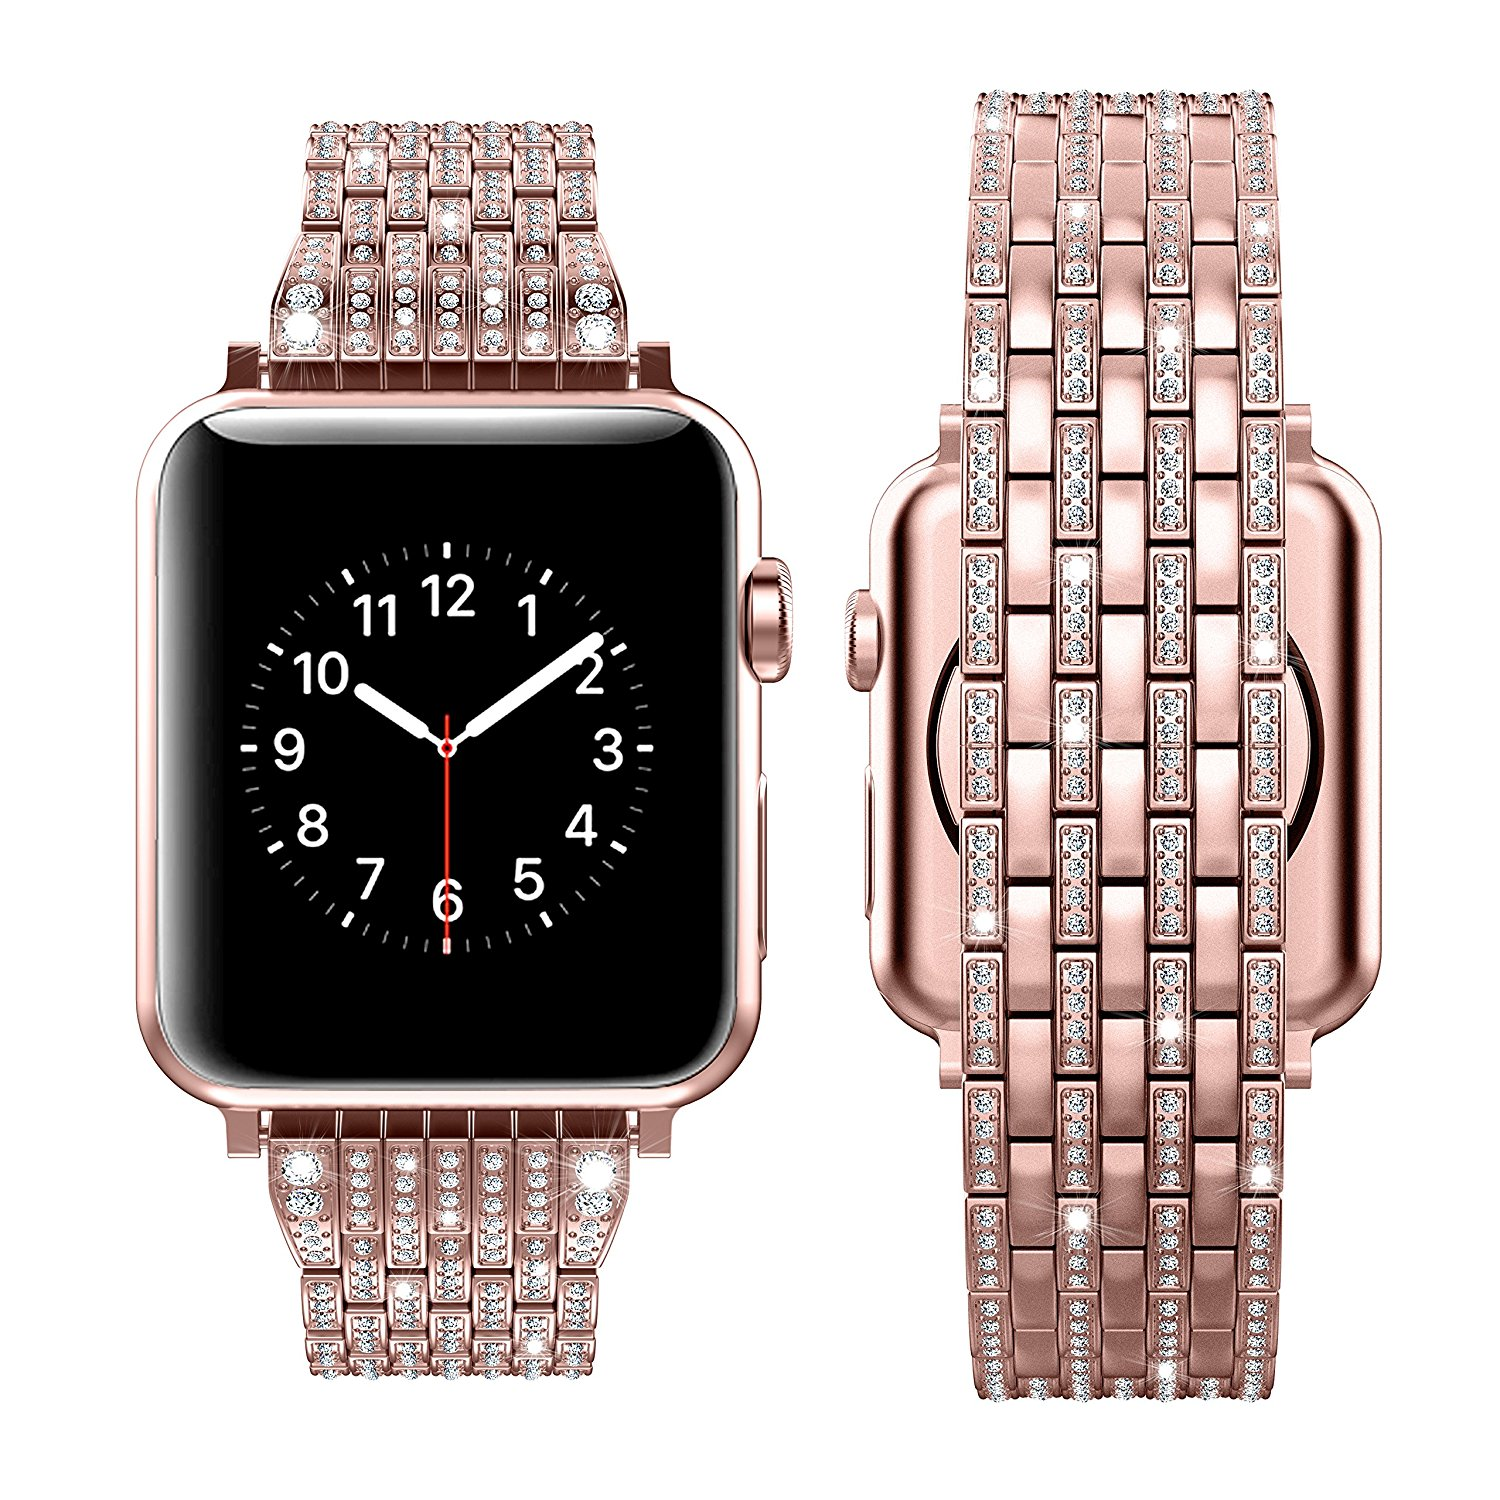 Luxury Rhinestone Diamond Strap for apple watch band 42mm 38mm Stainless Steel Watch Band metal strap For iWatch series 1 2 3 luxury ladies watch strap for apple watch series 1 2 3 wrist band hand made by crystal bracelet for apple watch series iwatch